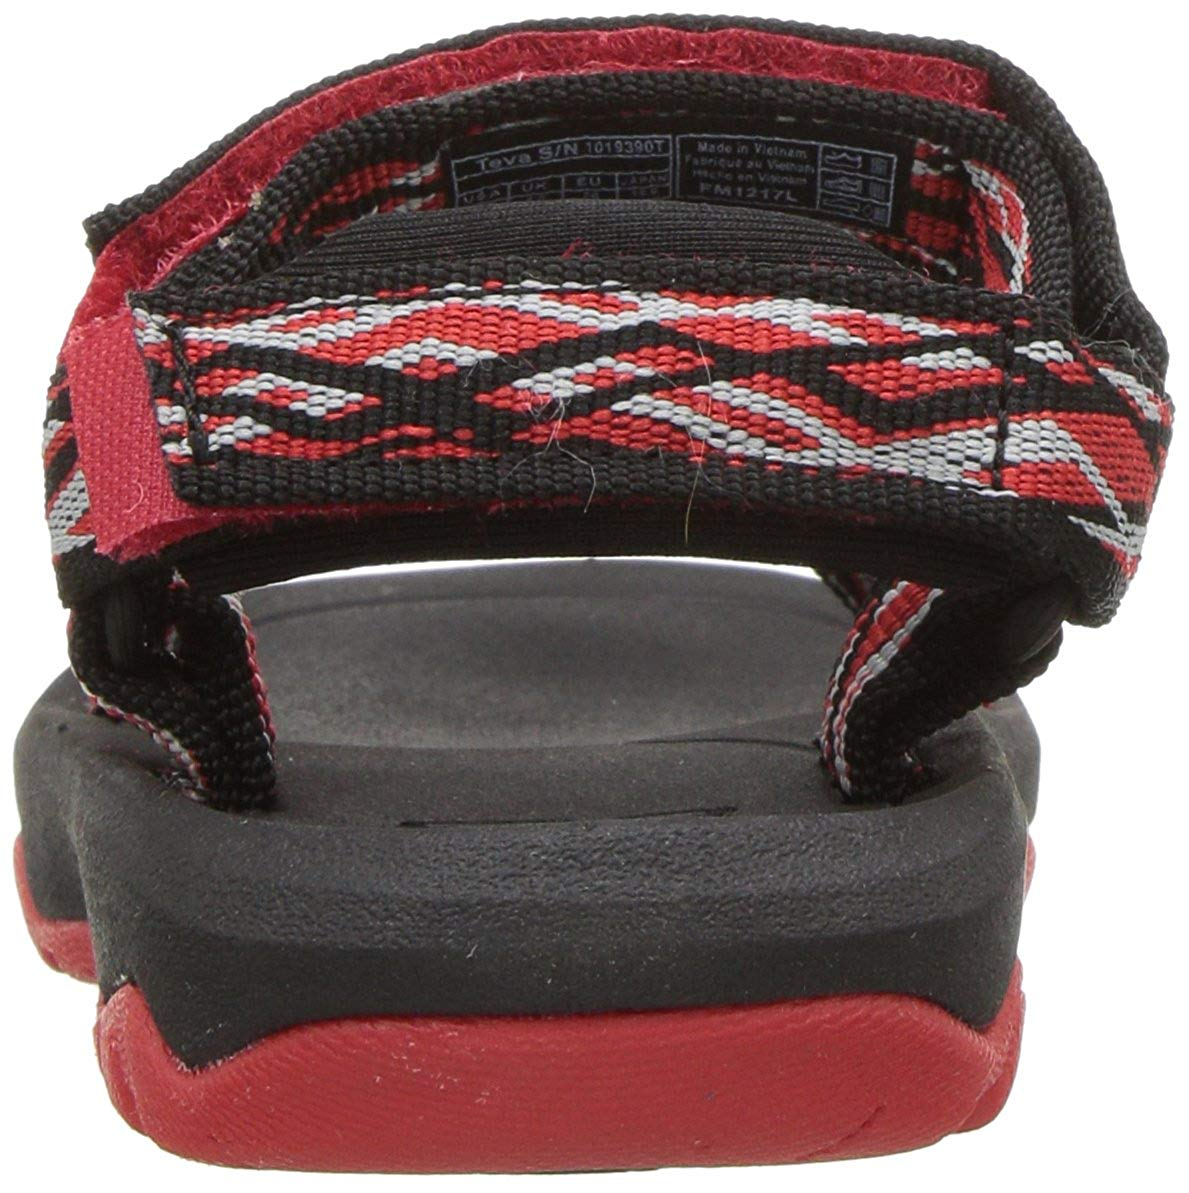 cad466b94a31f0 Teva Hurricane XLT 2 Girls Sandals Delmar Black Red 0 US   M